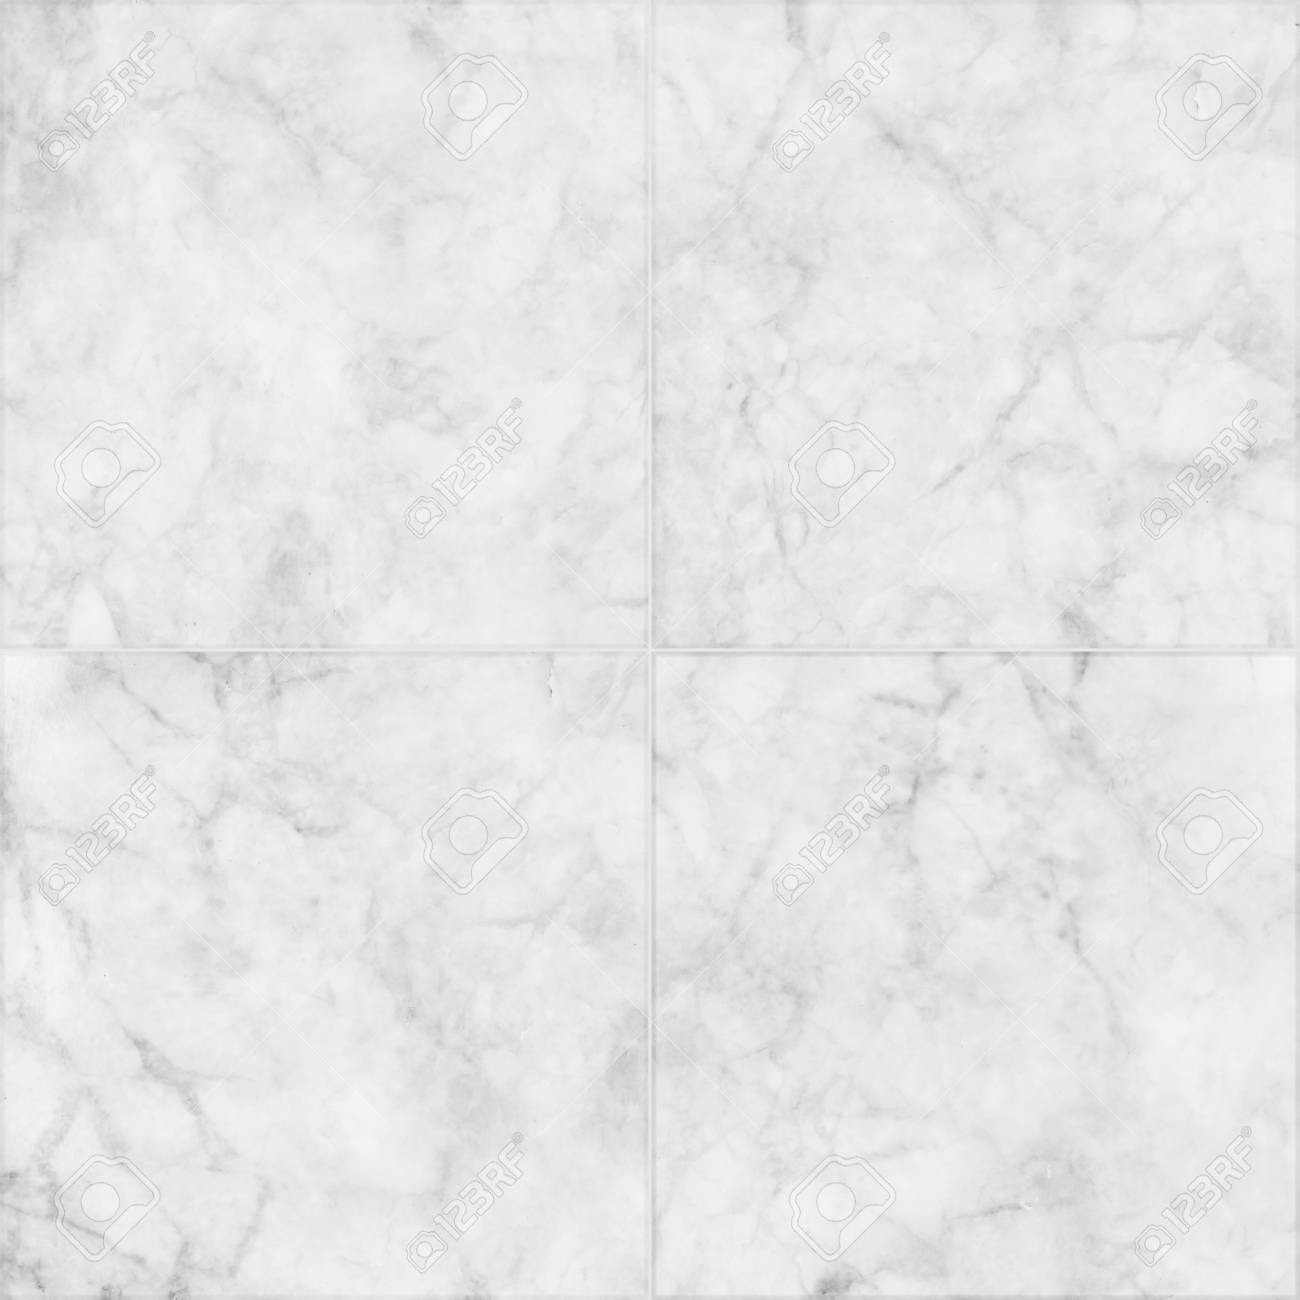 white marble tile texture. Stock Photo - White Marble Tiles Seamless Flooring Texture, Detailed  Structure Of For Background And Design. White Tile Texture I